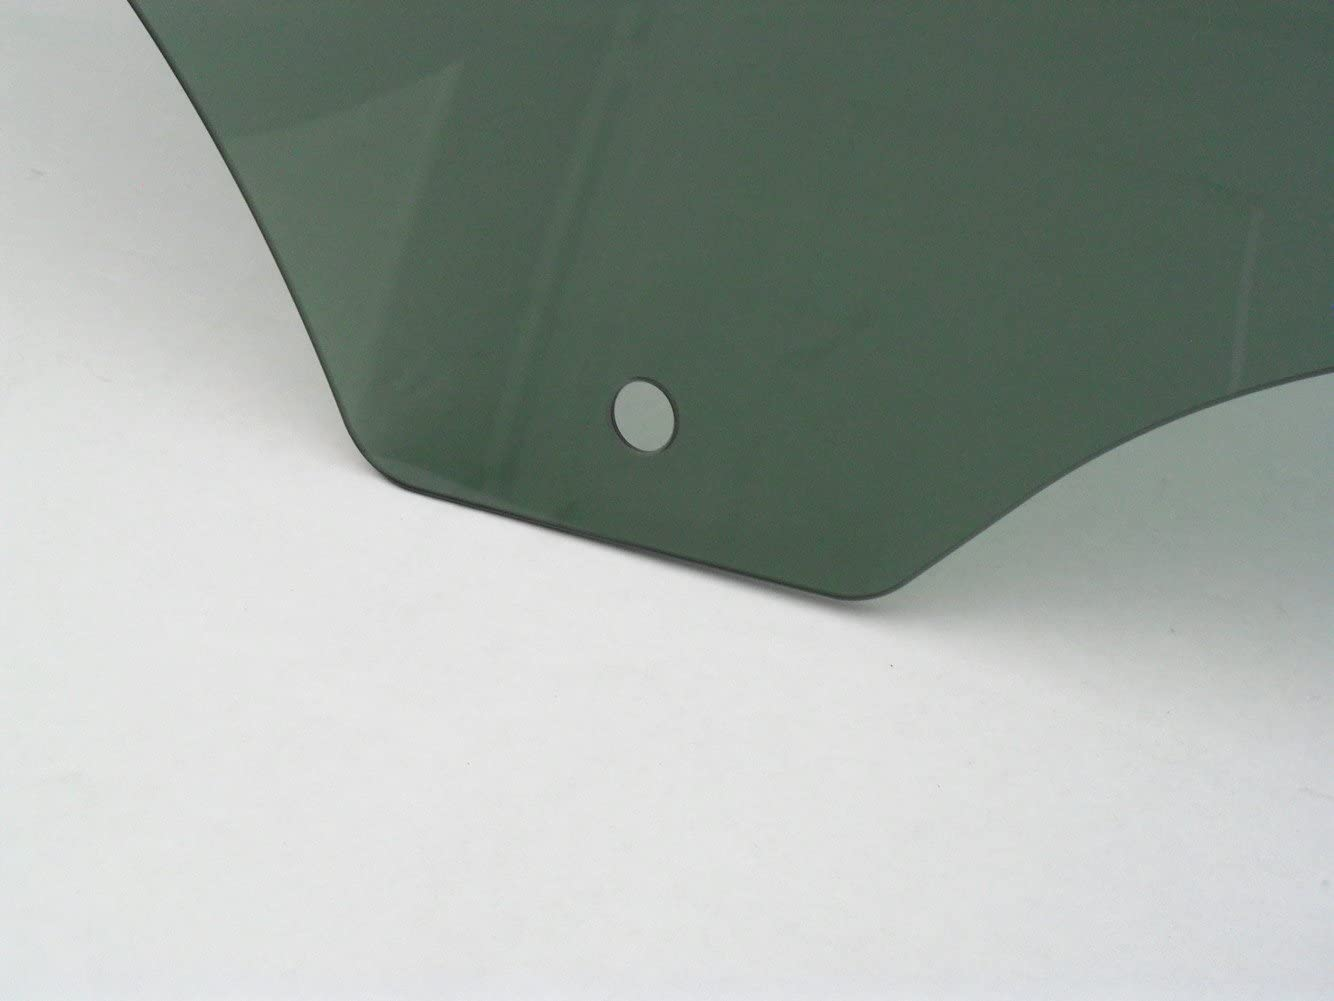 NAGD Privacy Passenger Right Side Rear Door Window Door Glass Compatible with BMW X3 2004-2010 Models